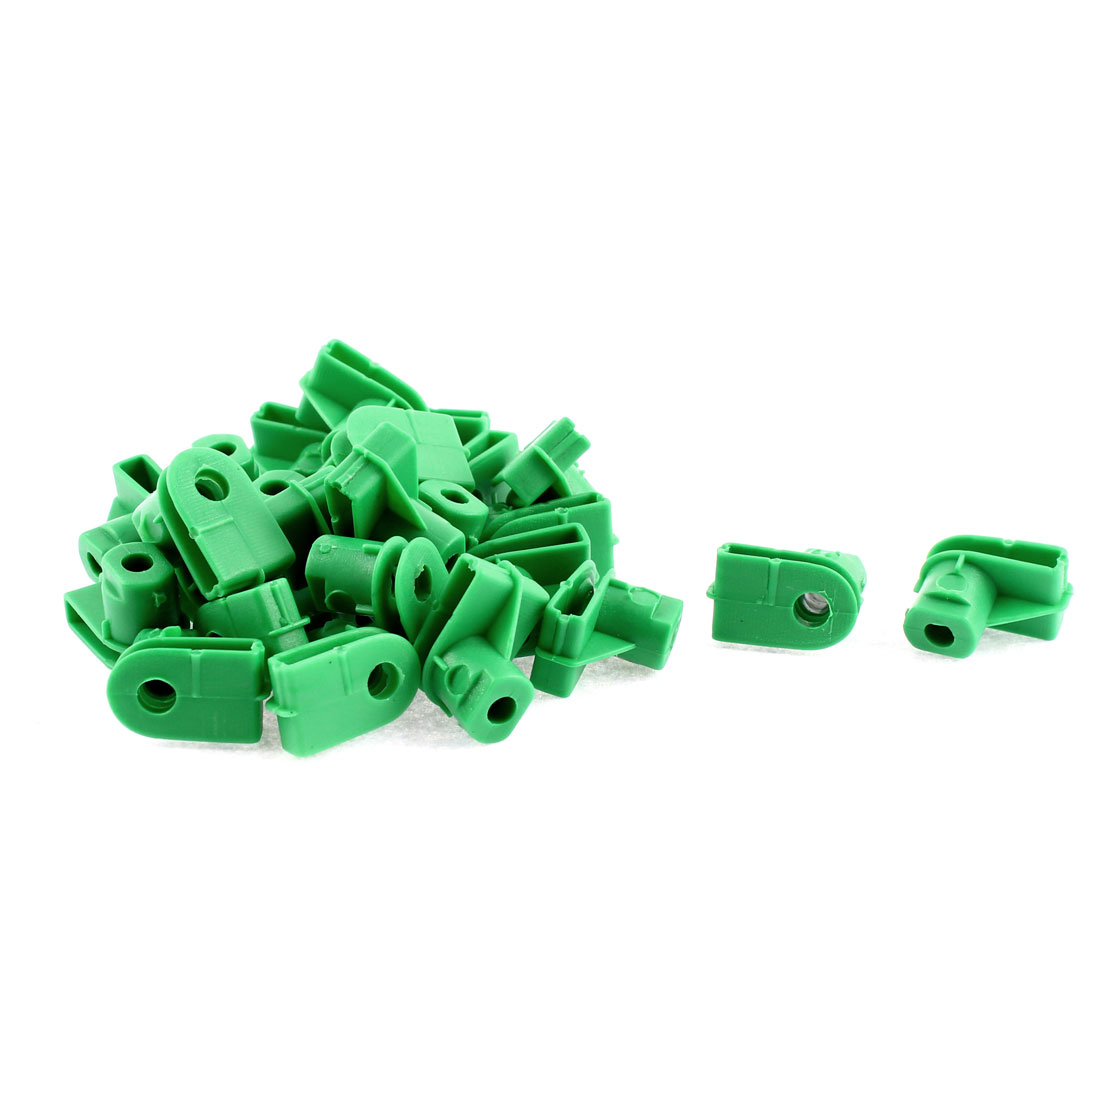 25 Pcs Green Plastic Splash Guard Defender Bumper Mat Clip for